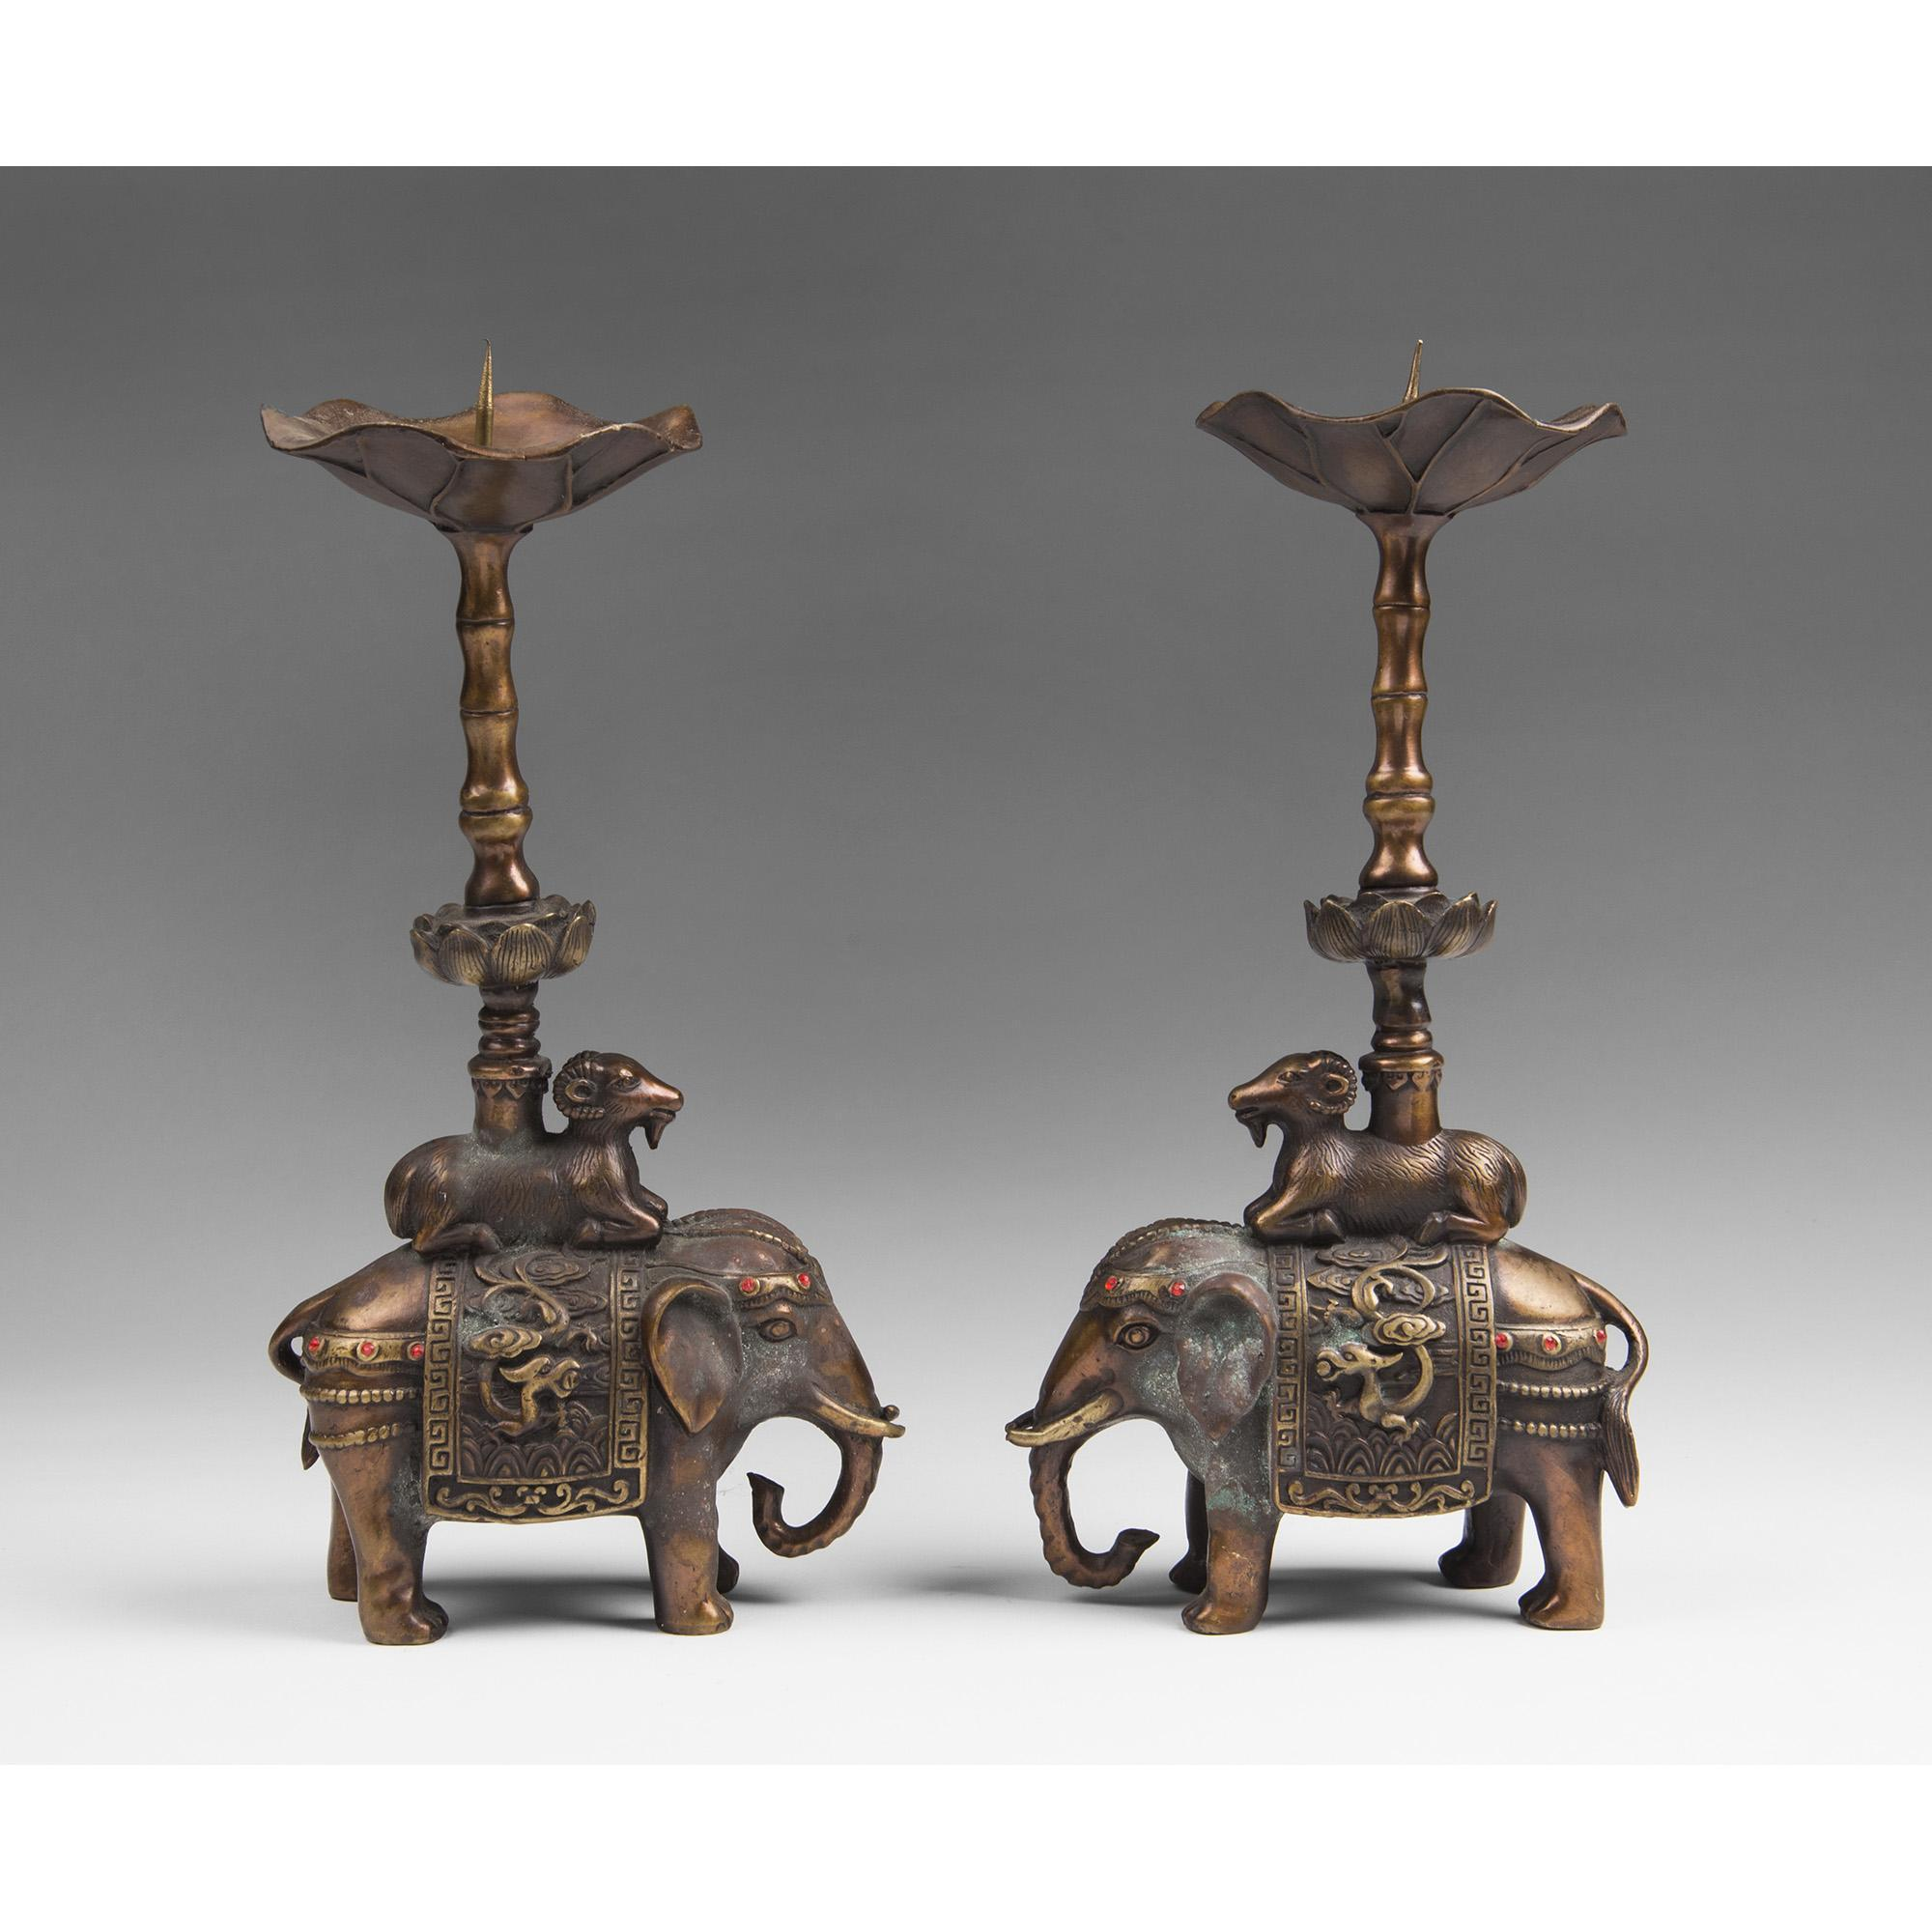 Pair of Chinese Bronze Elephant Form Pricket Candlesticks